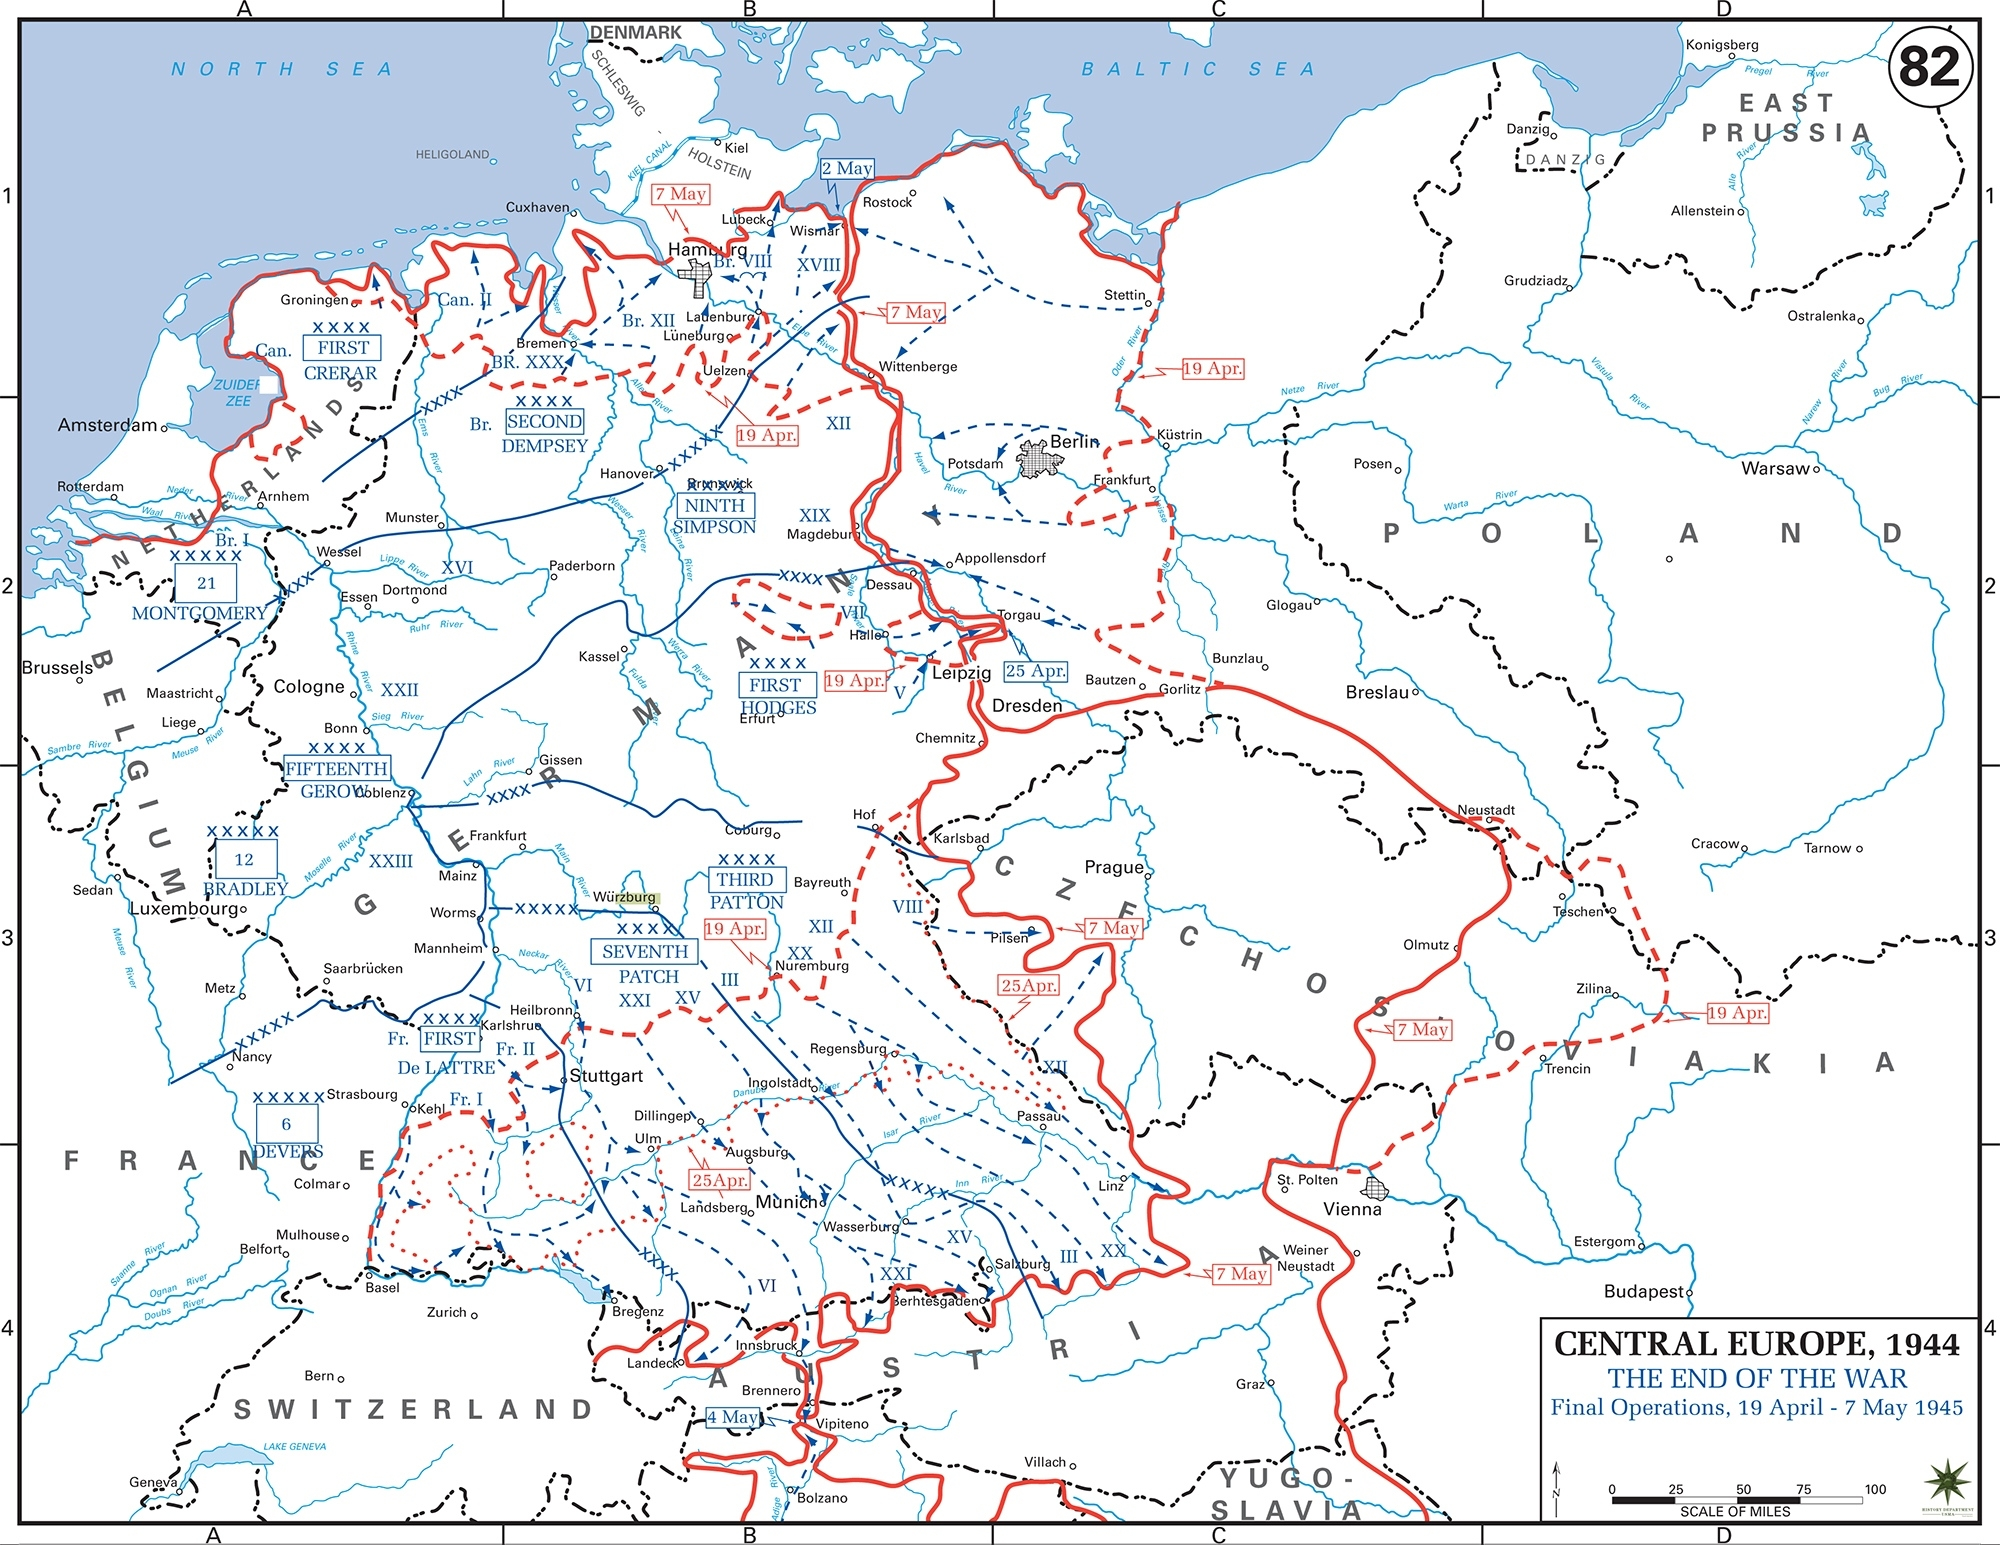 Map Of Wwii: Germany May 1945 intended for Map Of Germany World War Ii